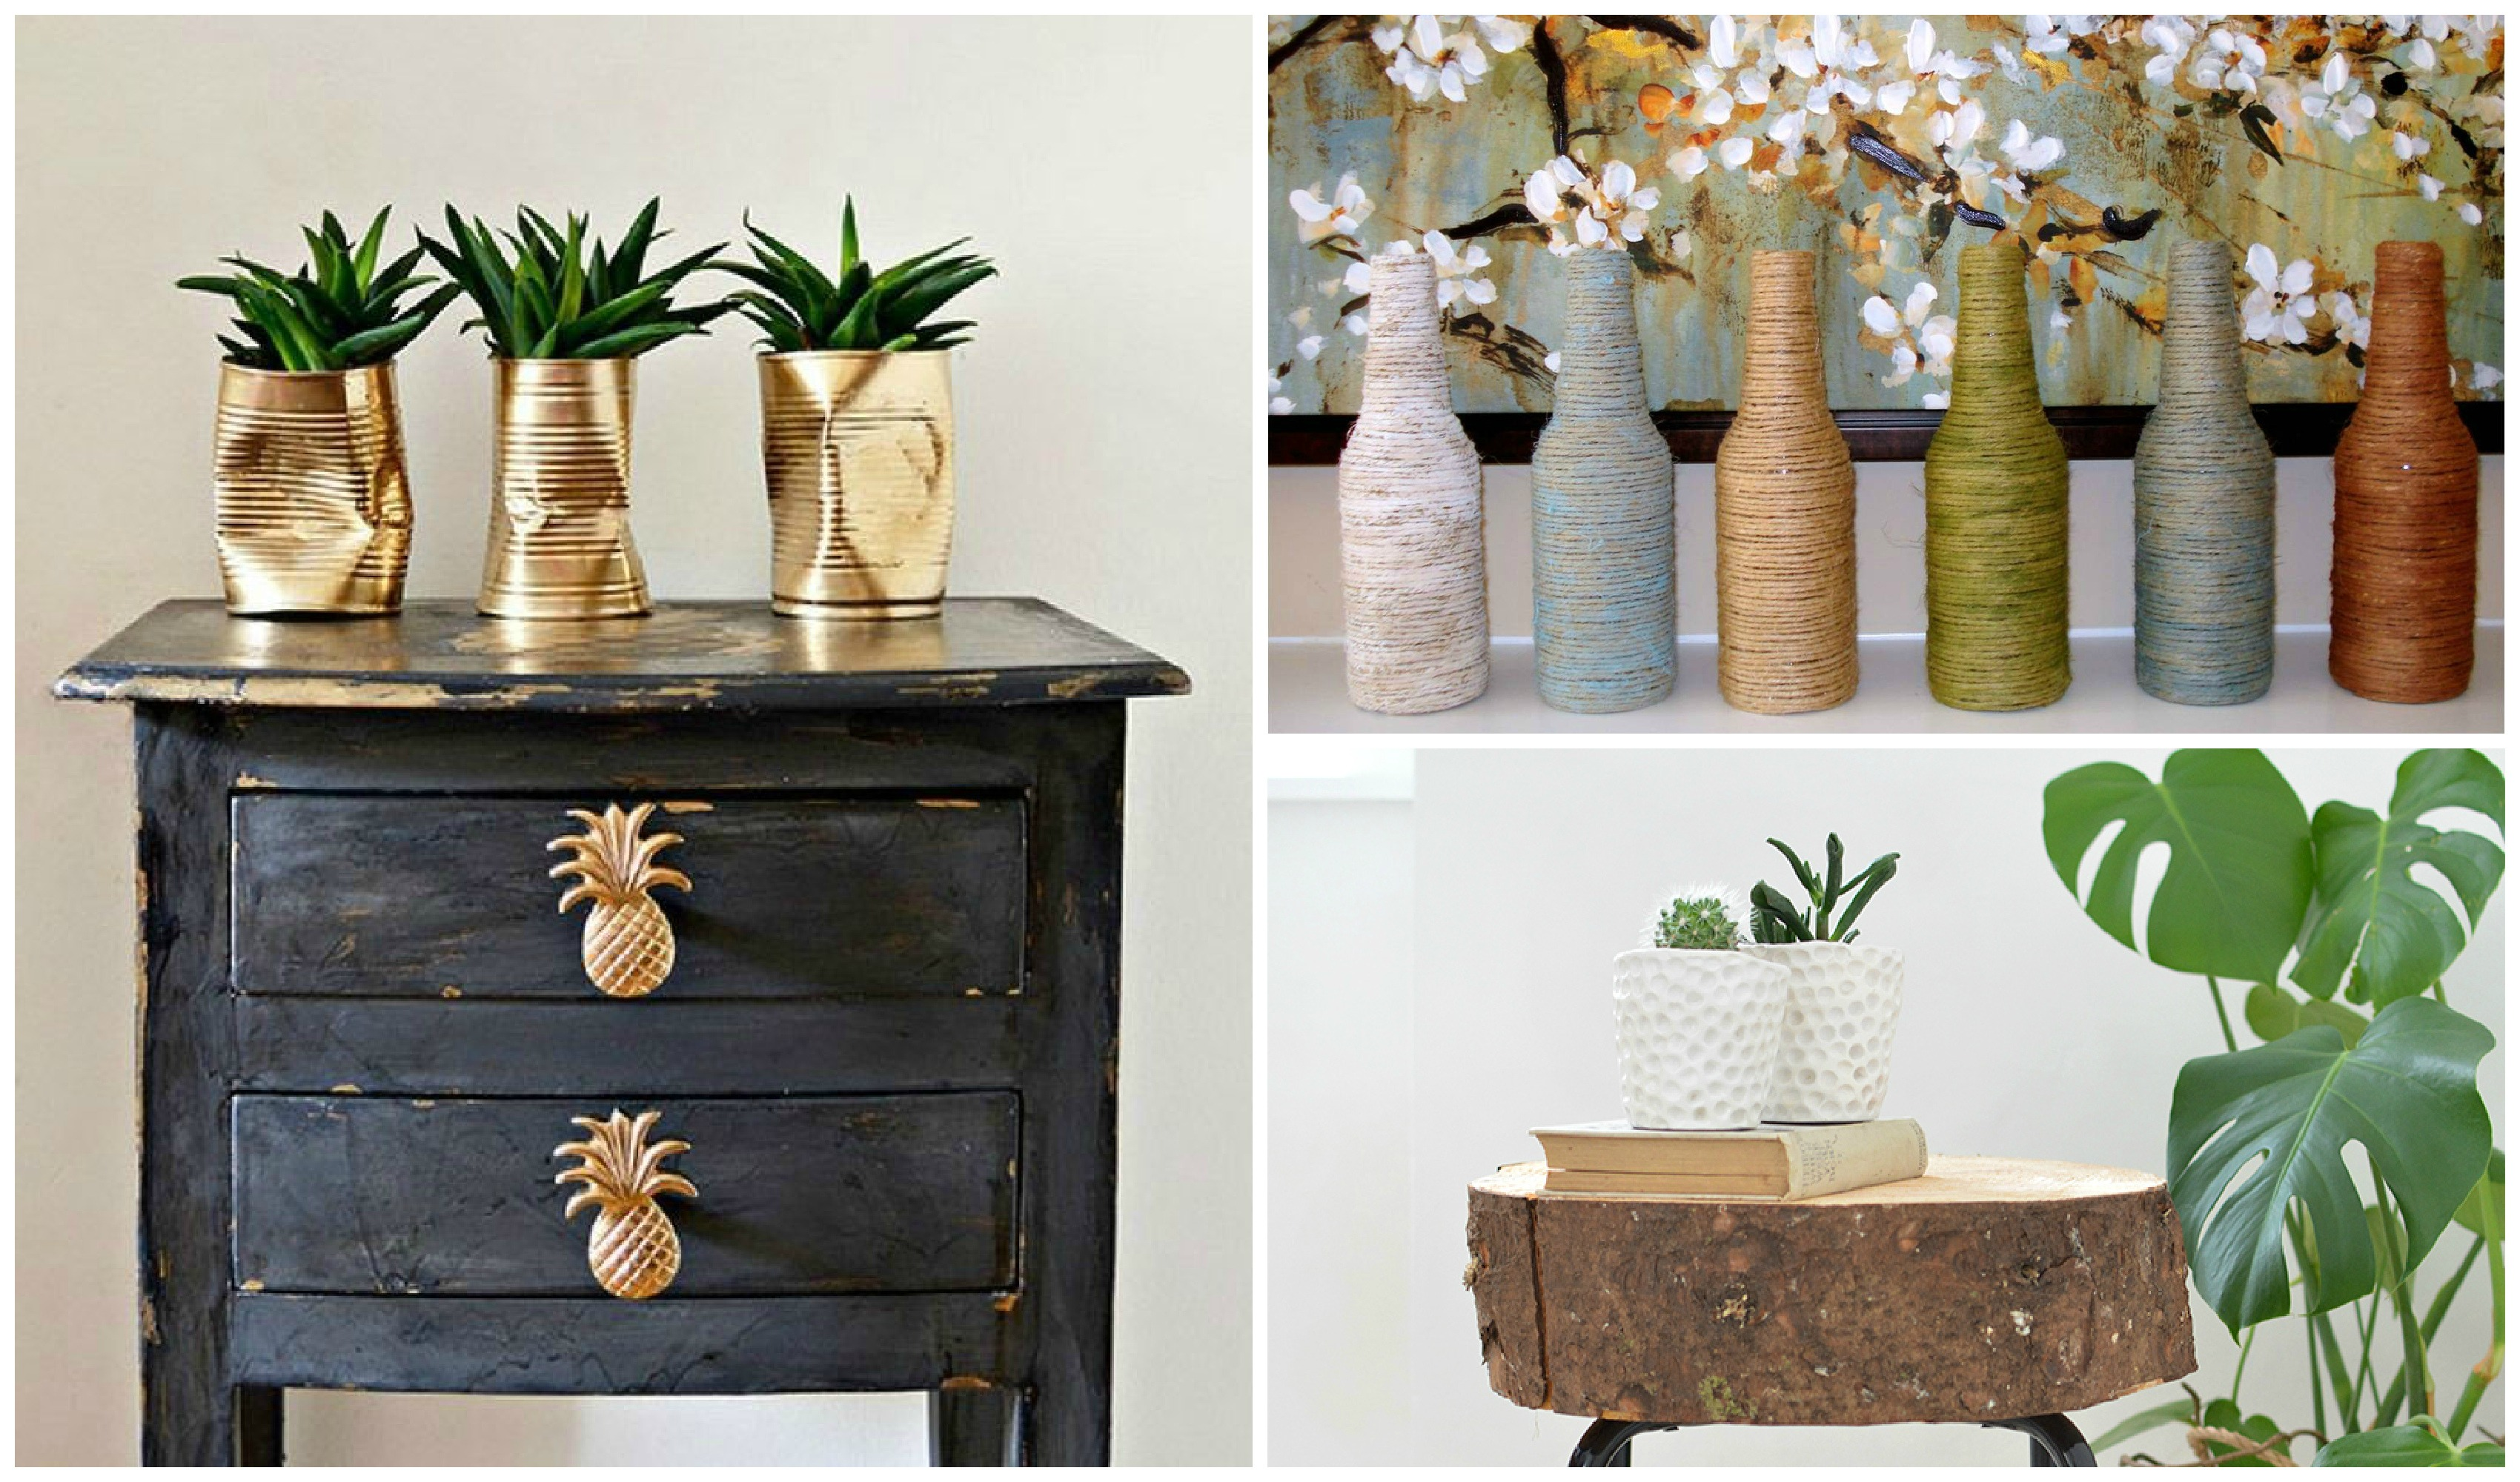 17 DIY Home Crafty Decor Ideas